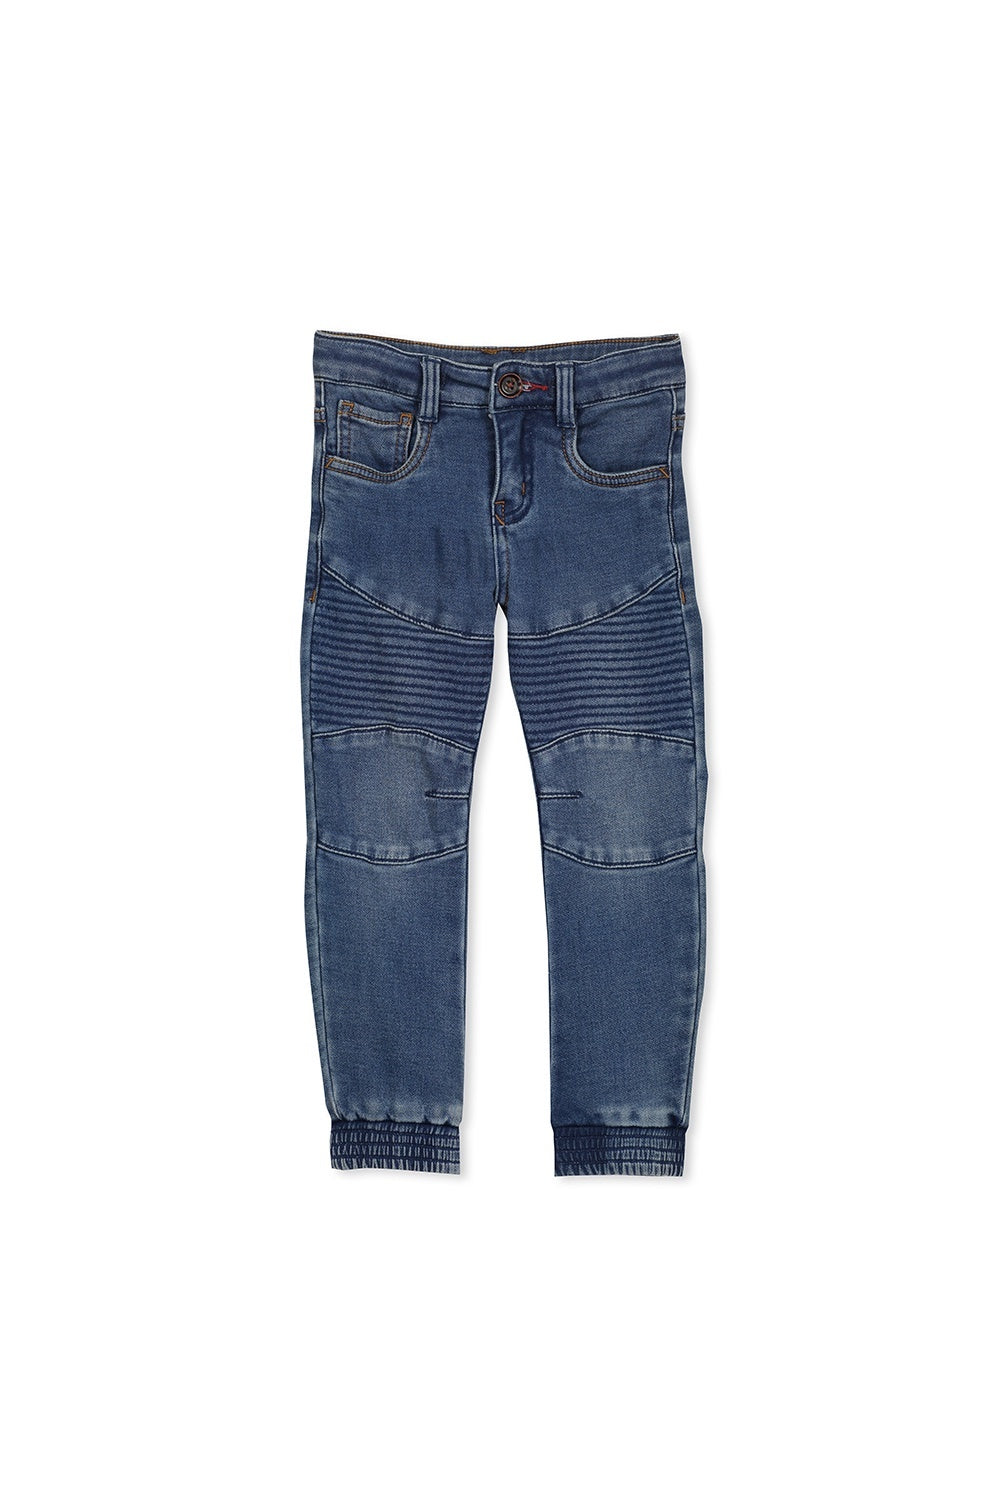 Boys Blue Knit Denim Jeans